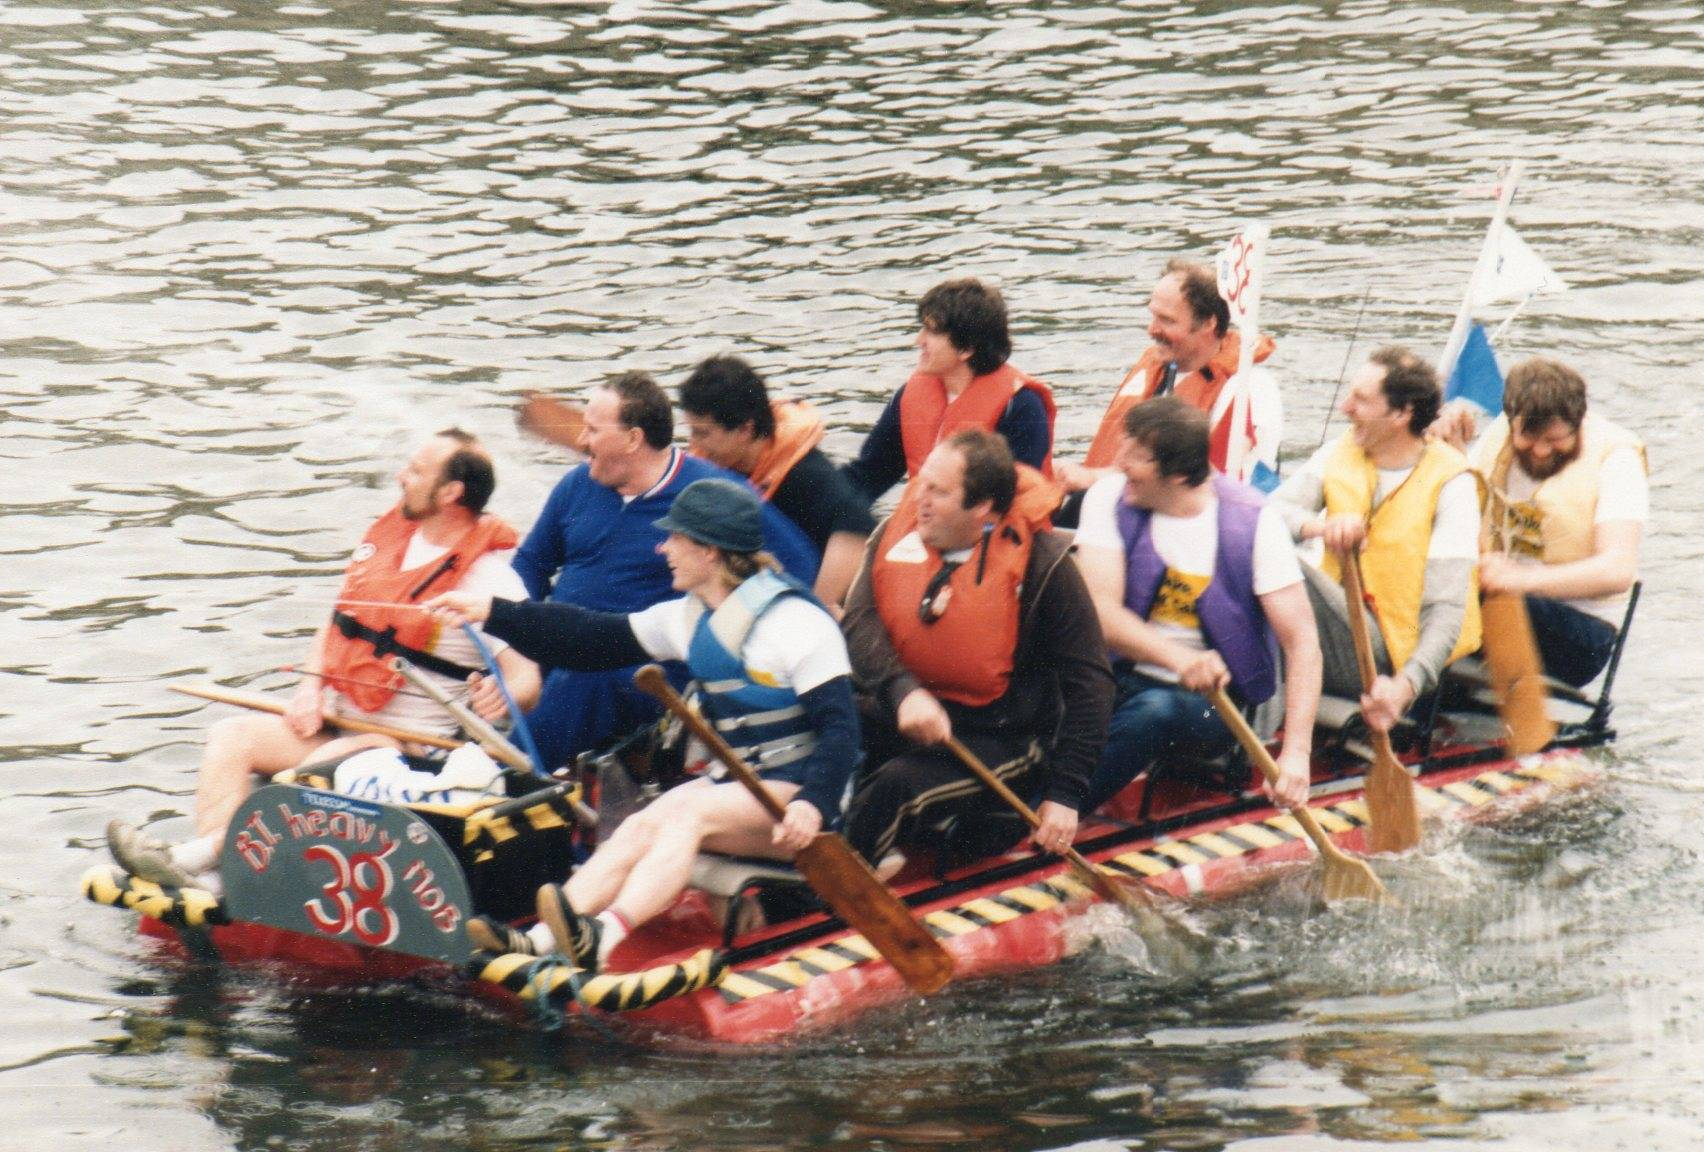 Raft Race 1. - Donated by Keith Beesley